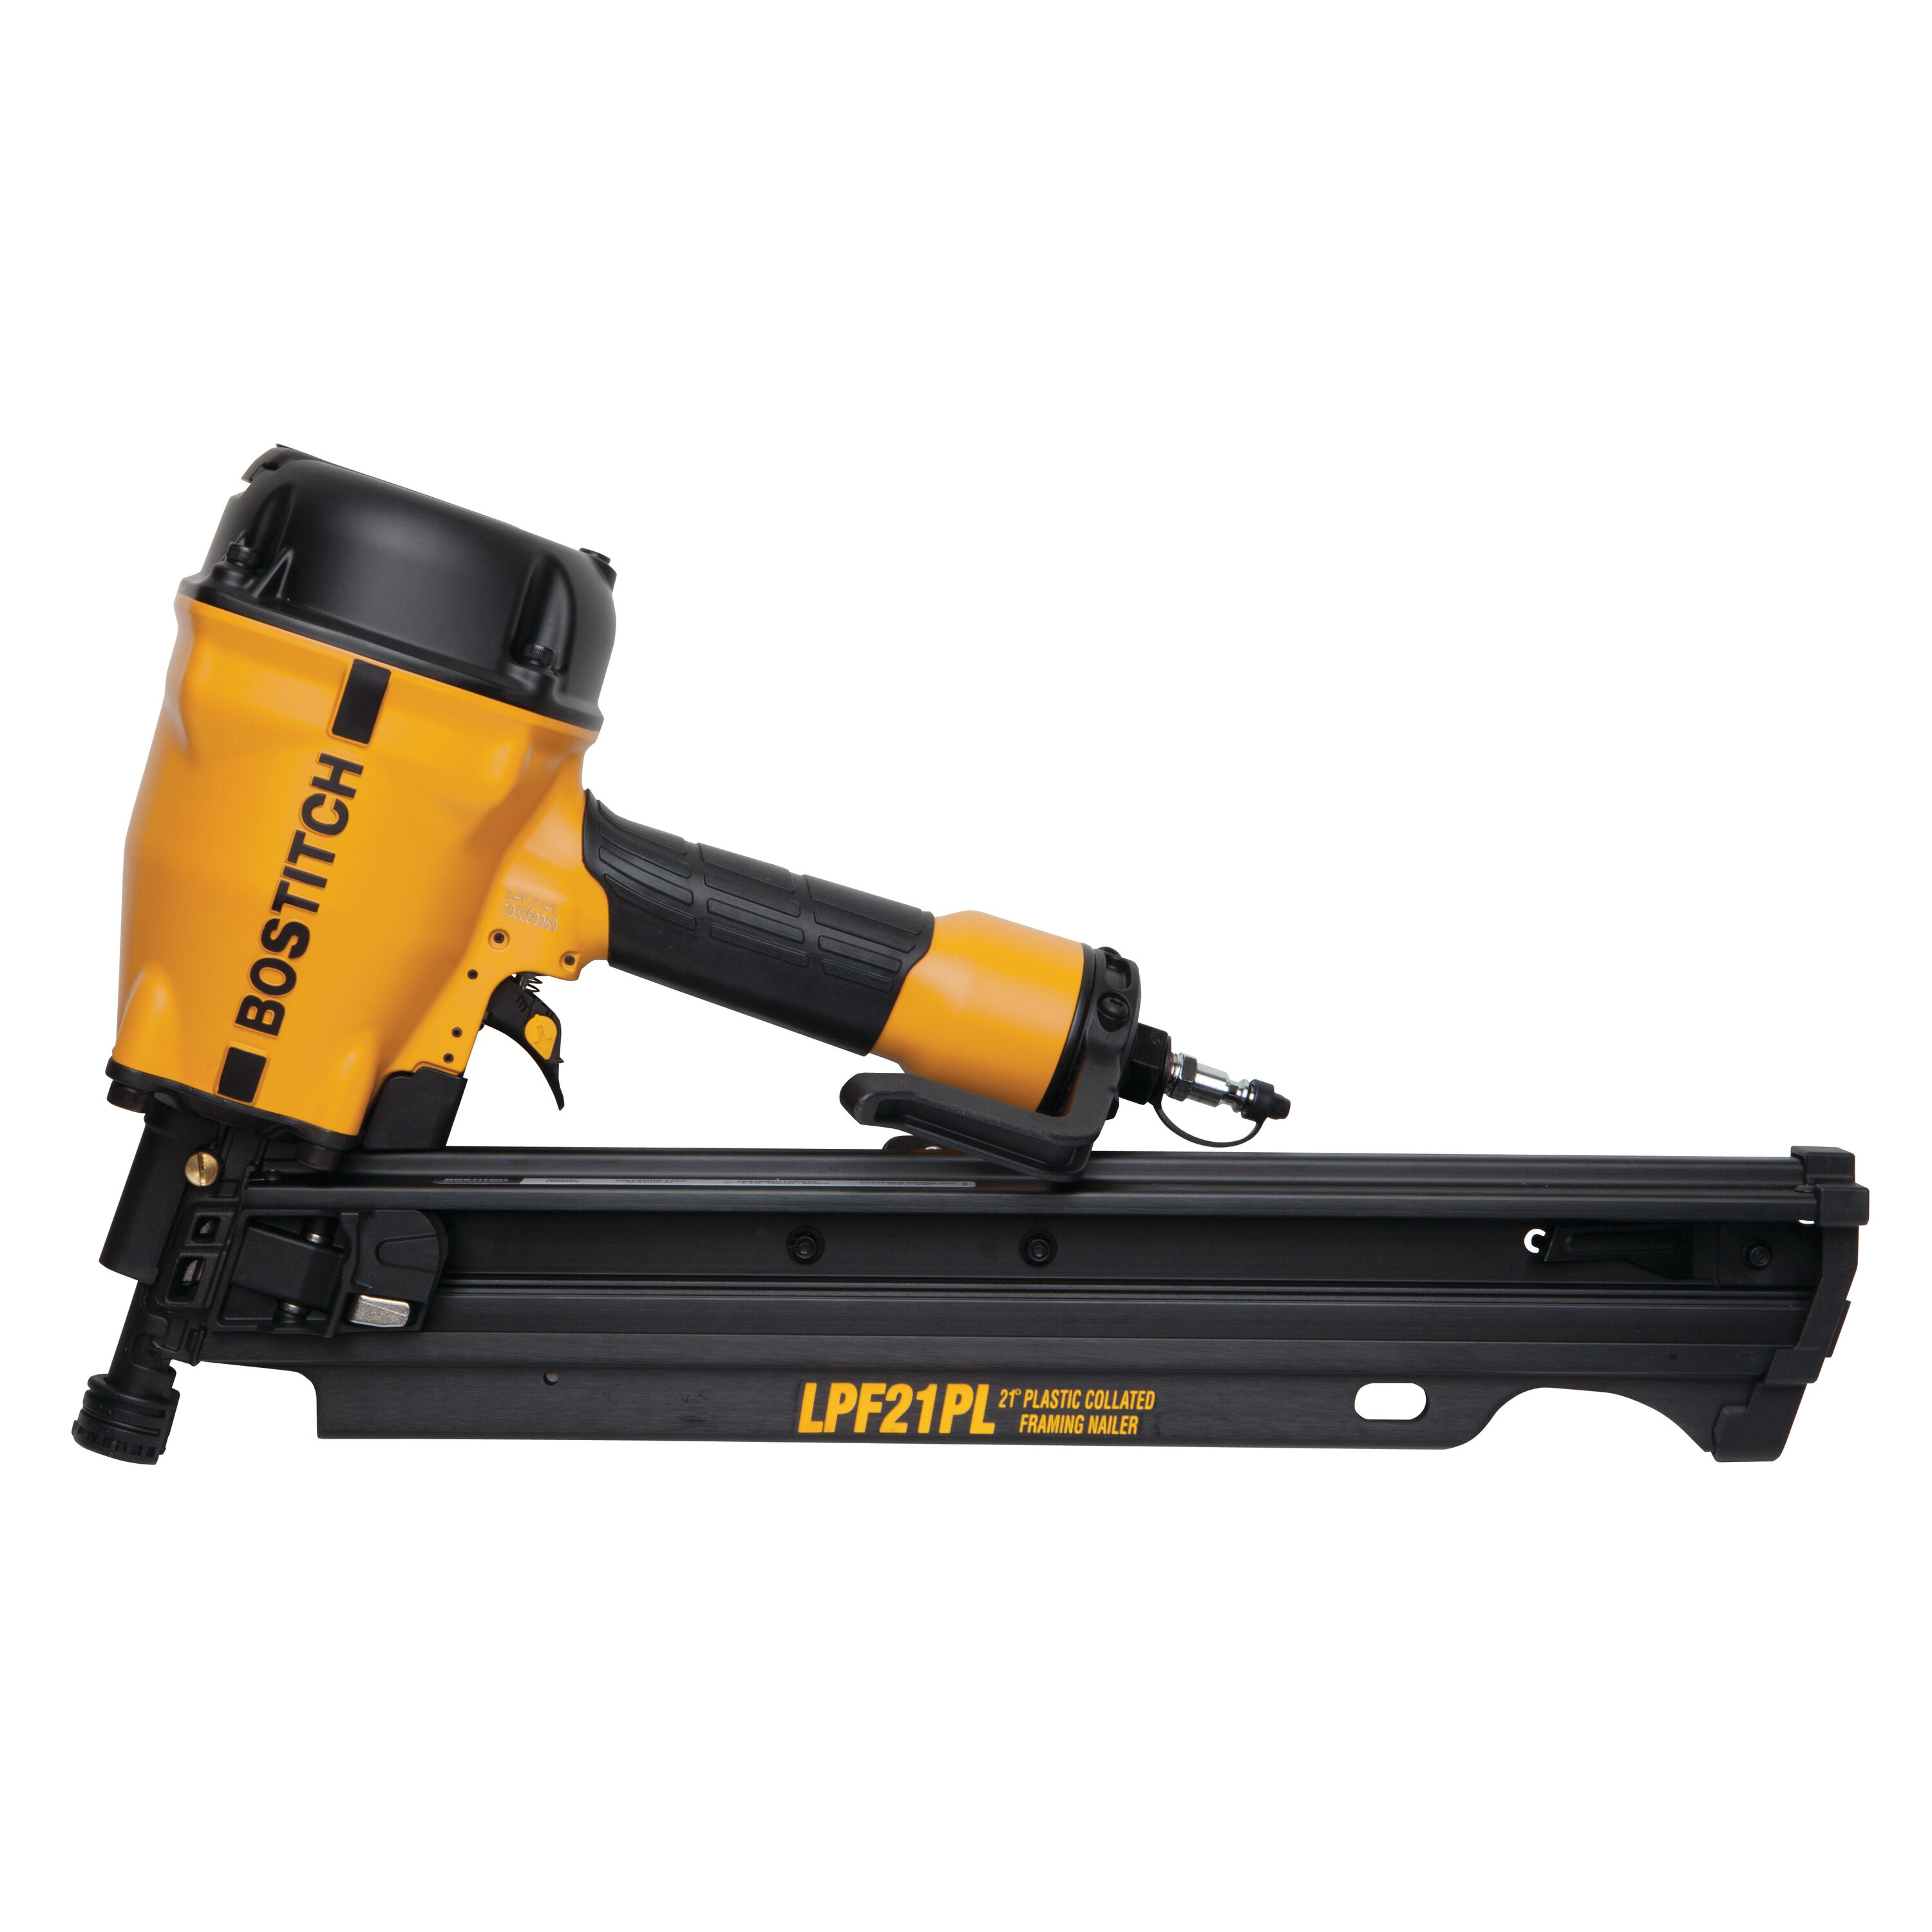 Bostitch - Low Profile Plastic Collated Framing Nailer - LPF21PL